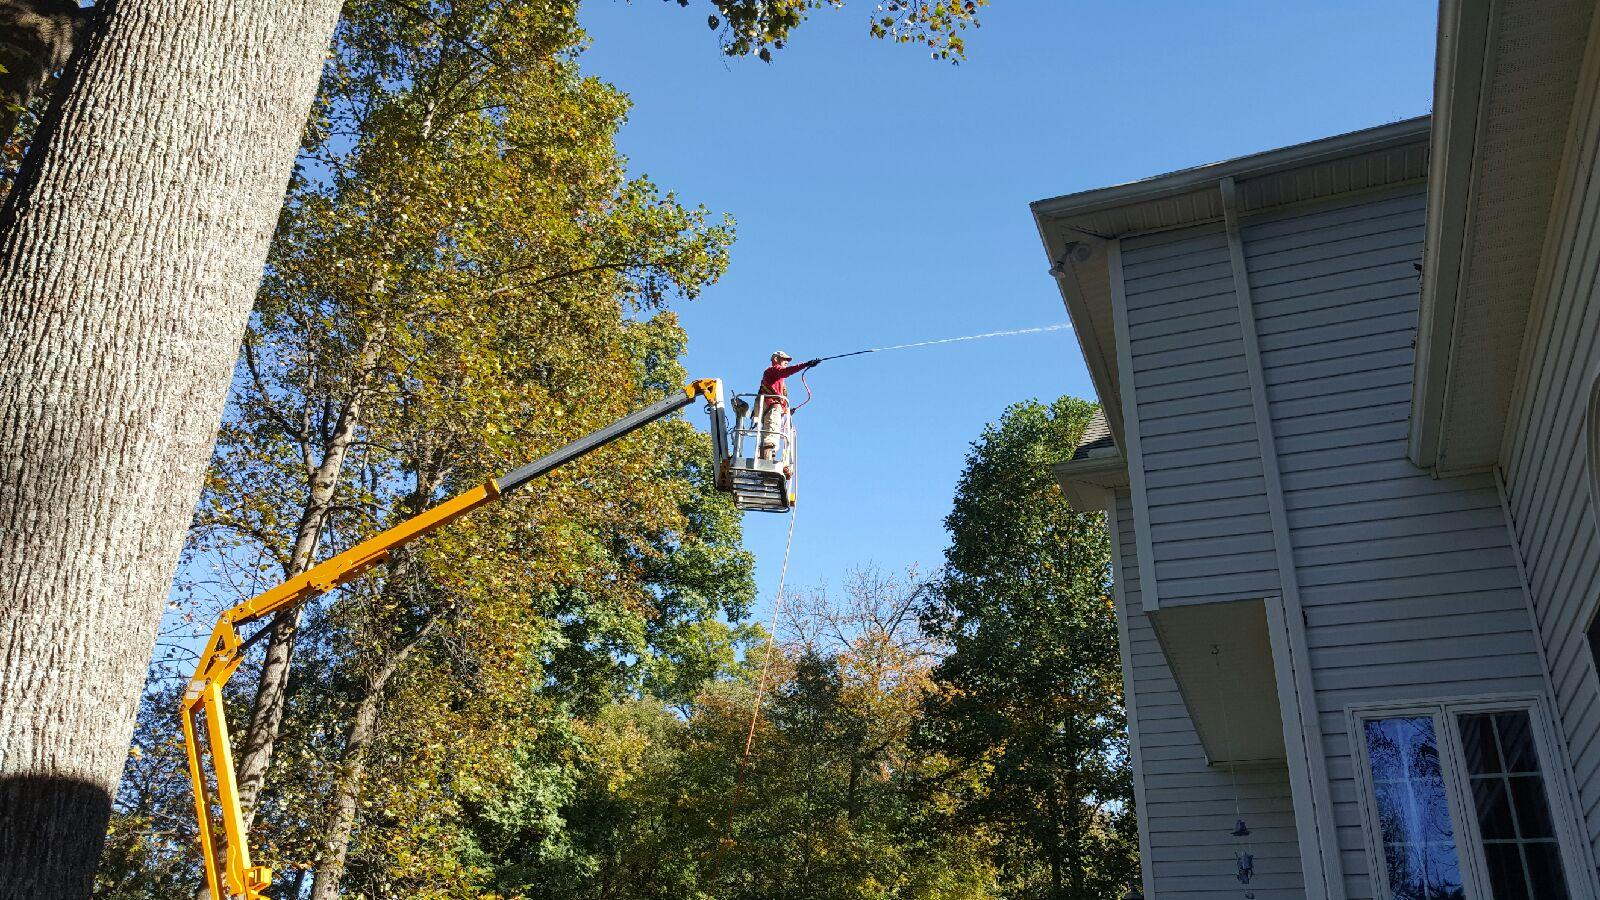 Boom Lift | Sidewalk Cleaning Contractor in Fayetteville PA